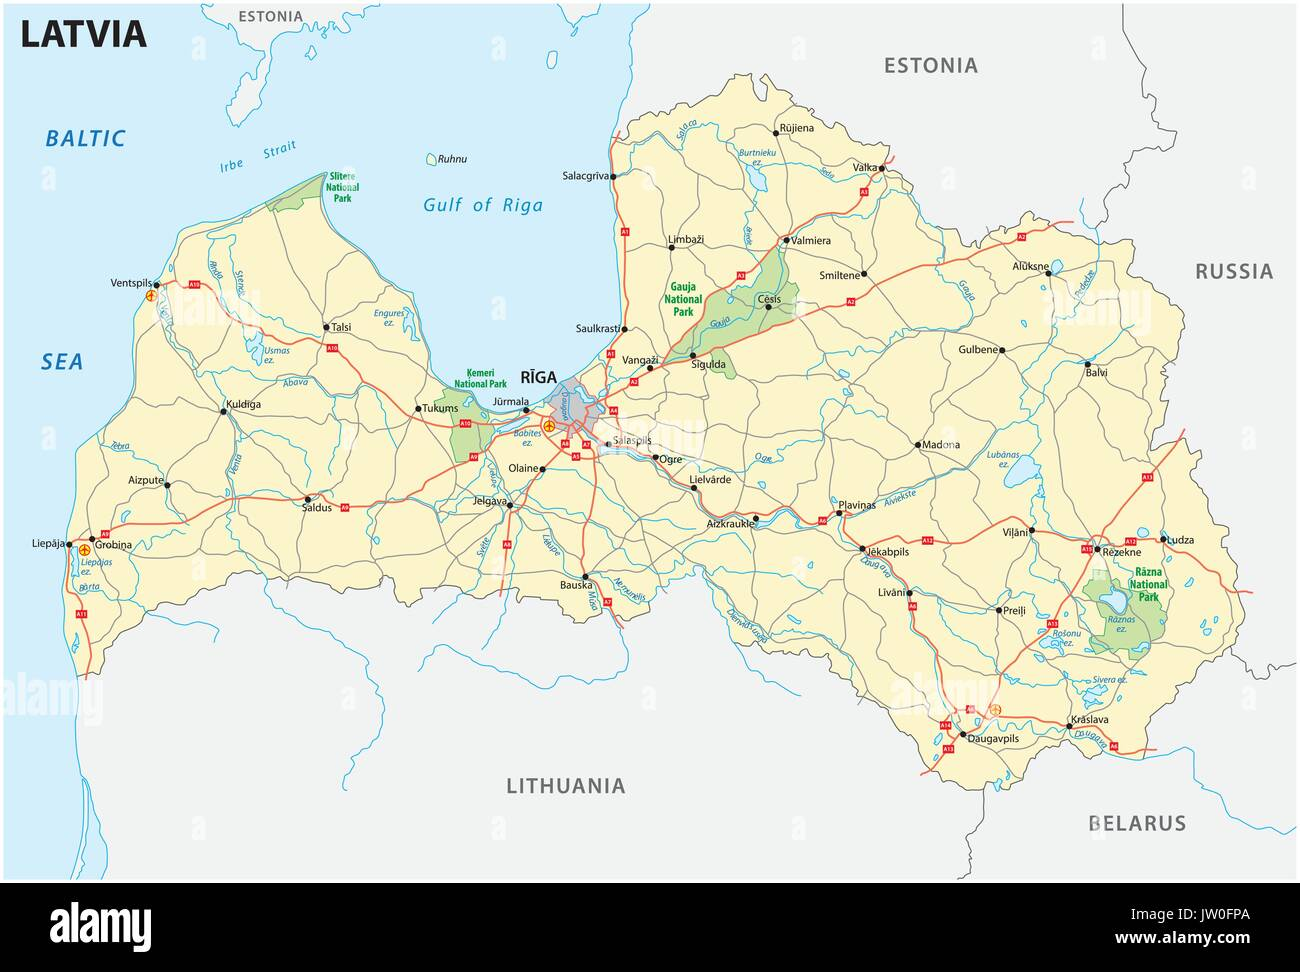 Map Of Latvia Stock Photos & Map Of Latvia Stock Images - Alamy